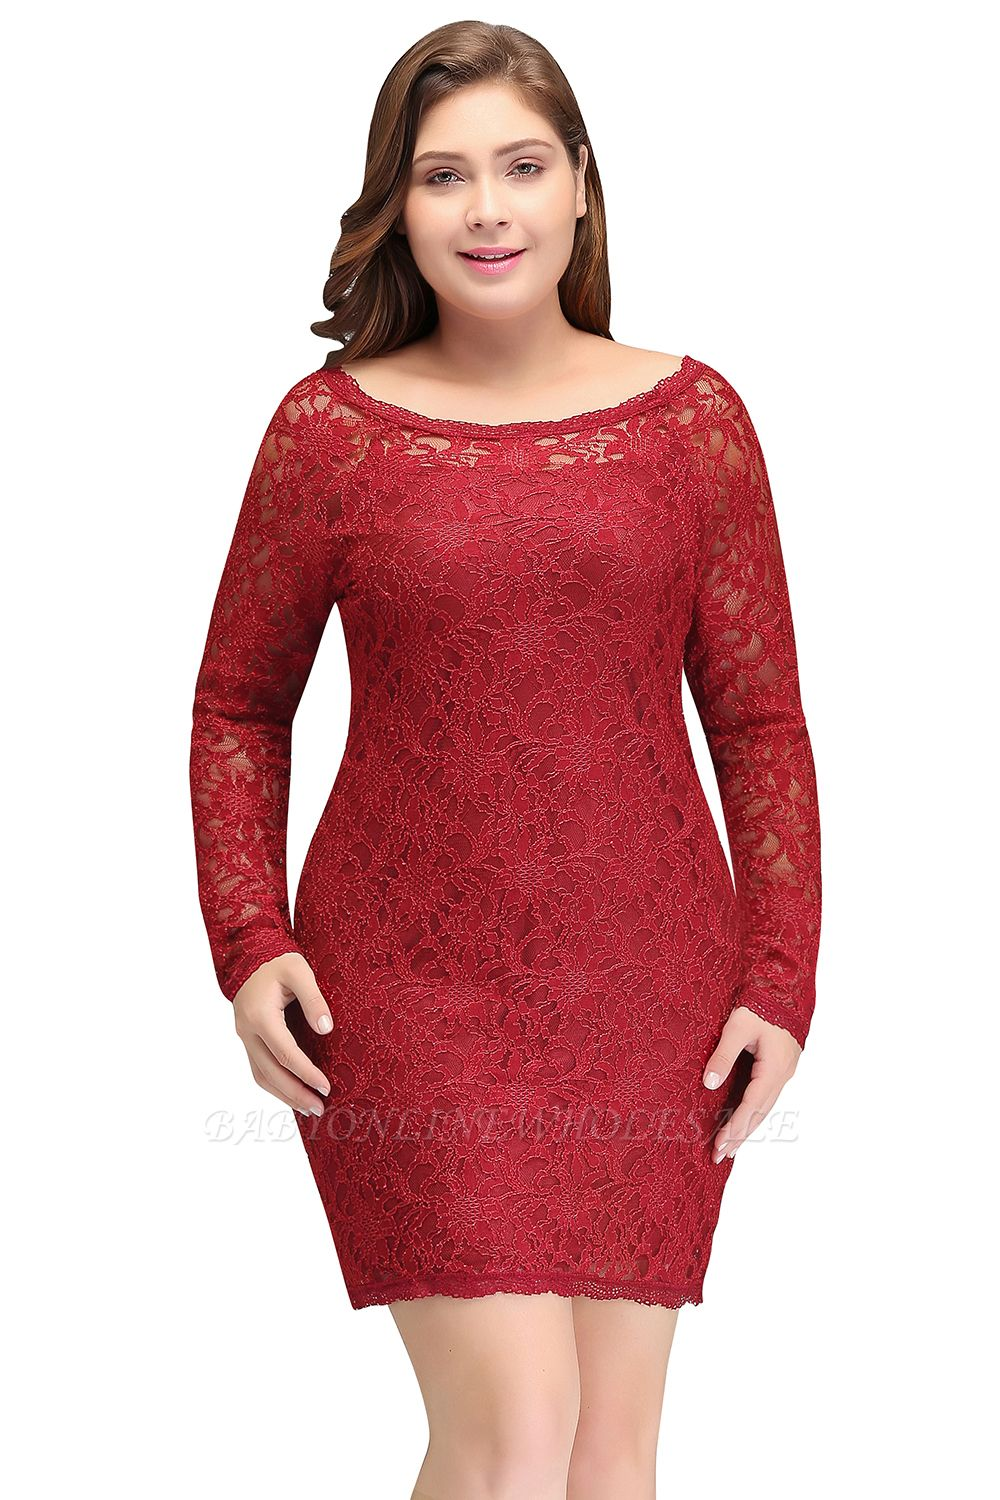 JANELLE | Sheath Scoop Short Long Sleeves Plus size homecoming ...